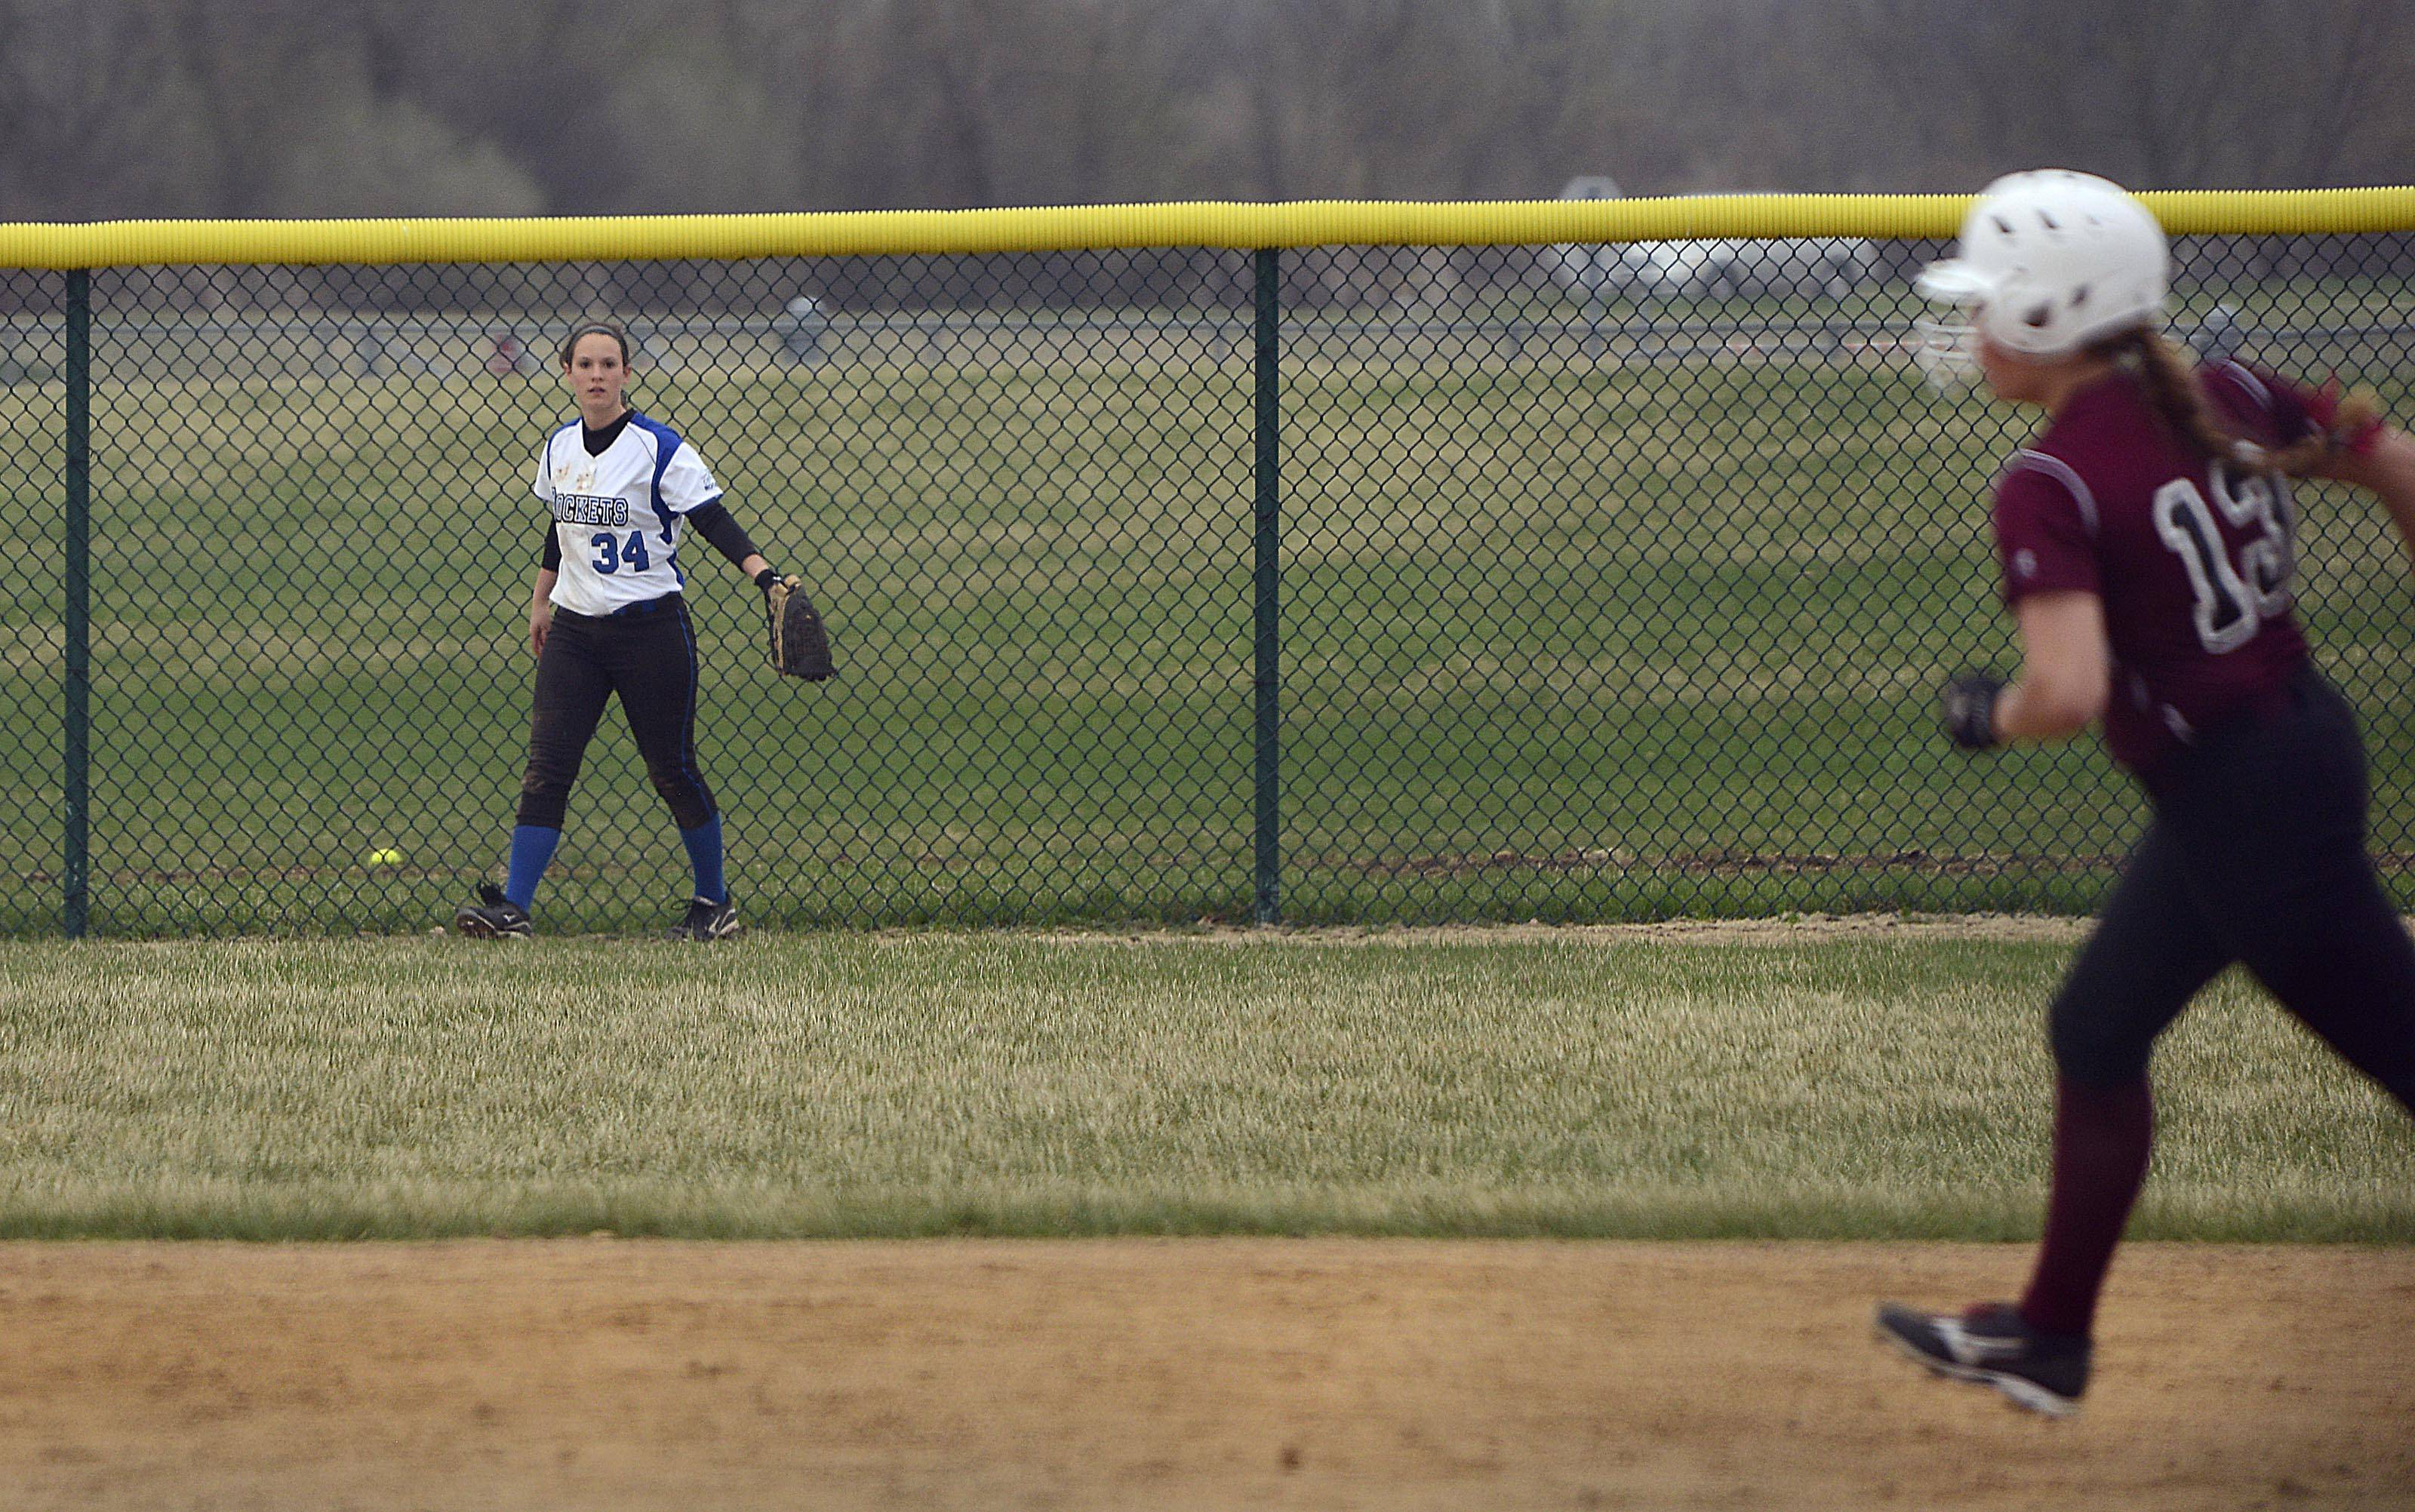 Burlington Central's Shelby Young turns away from the home run ball behind the fence to watch Marengo's Taylor Carlson round the bases with the go-ahead 2-run shot in the sixth inning Monday in Marengo.